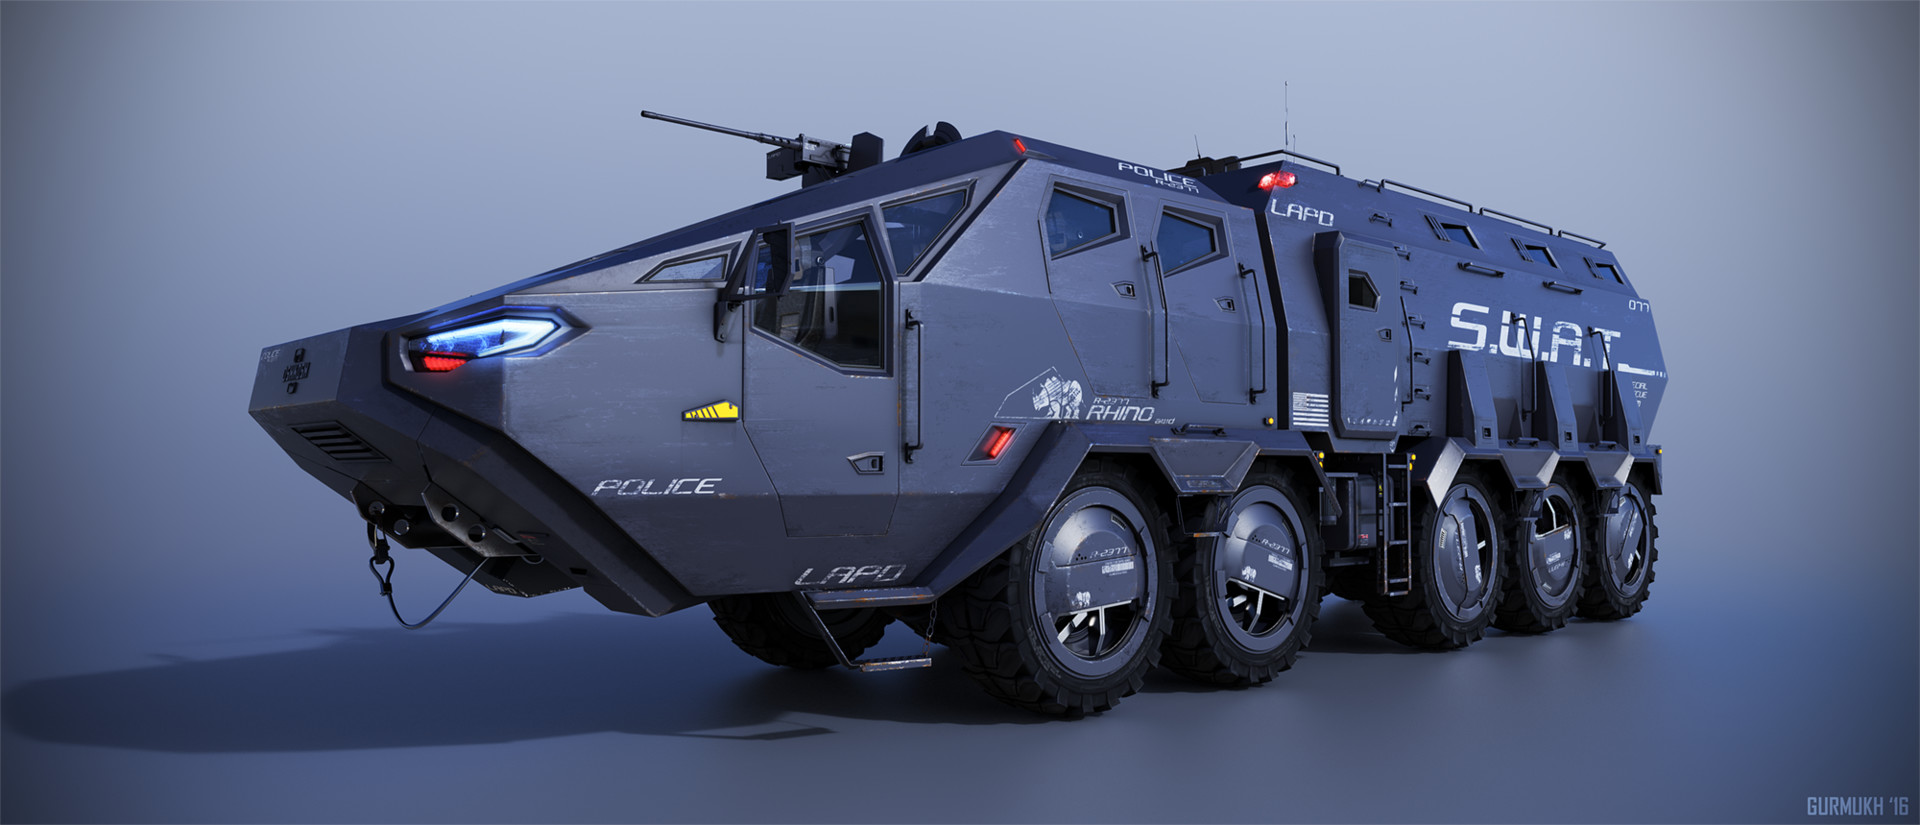 Military Vehicles For Sale >> Future Swat Car Pictures - Car Canyon